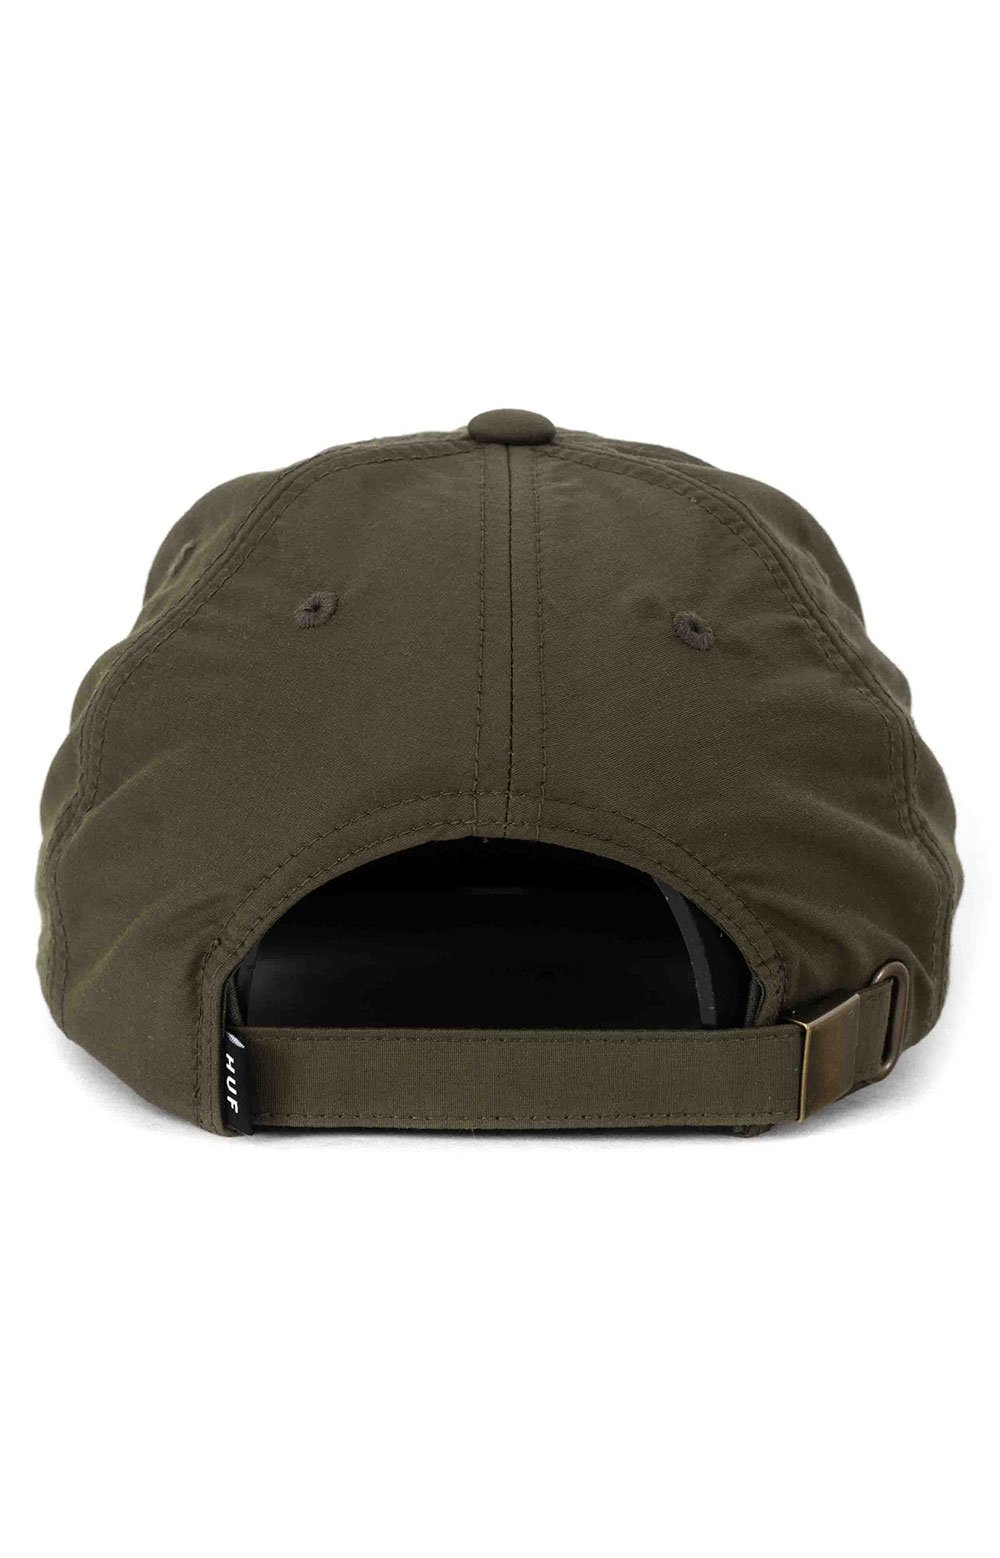 Formless Classic H 6 Panel Hat - Military Green 3